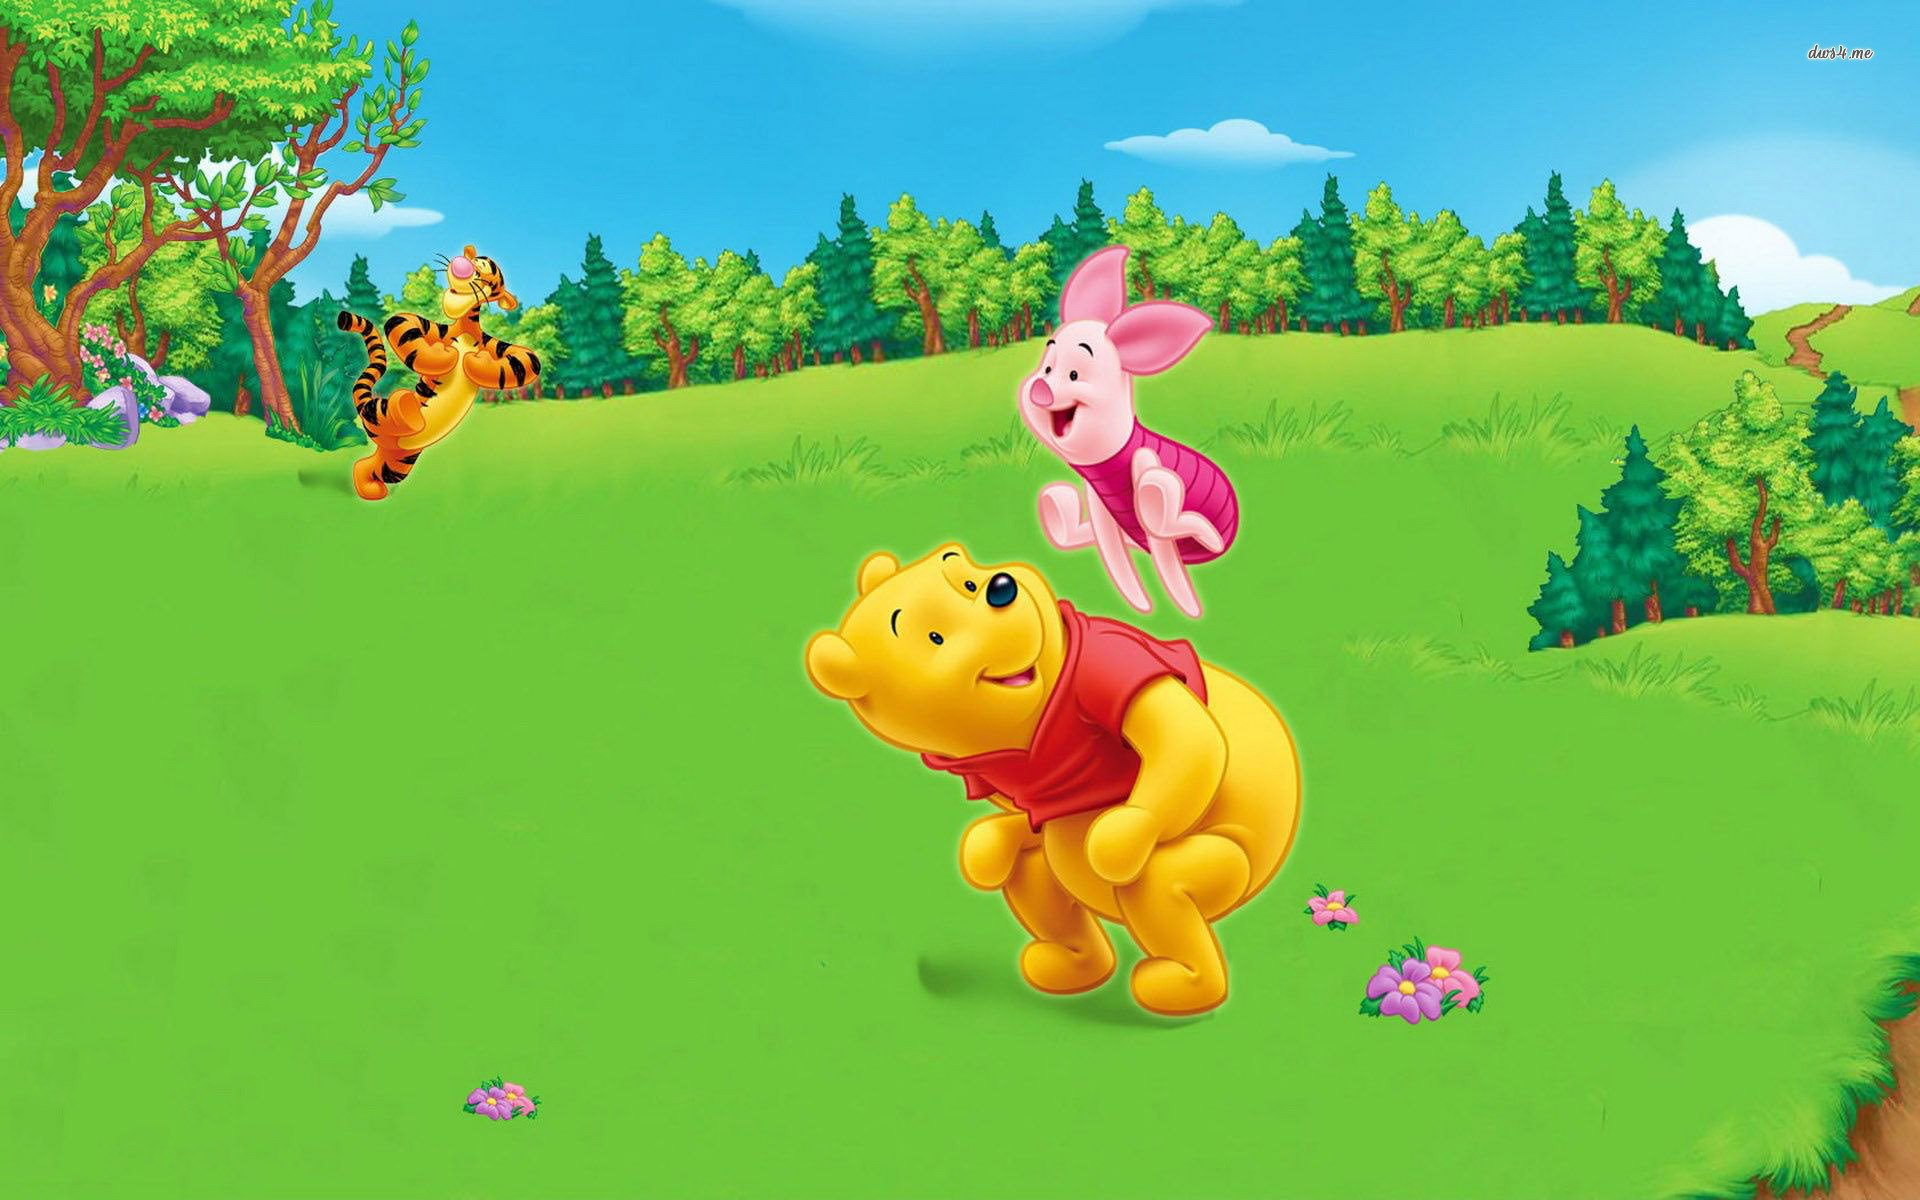 Winnie The Pooh New Year Wallpapers – Merry Christmas And Happy New